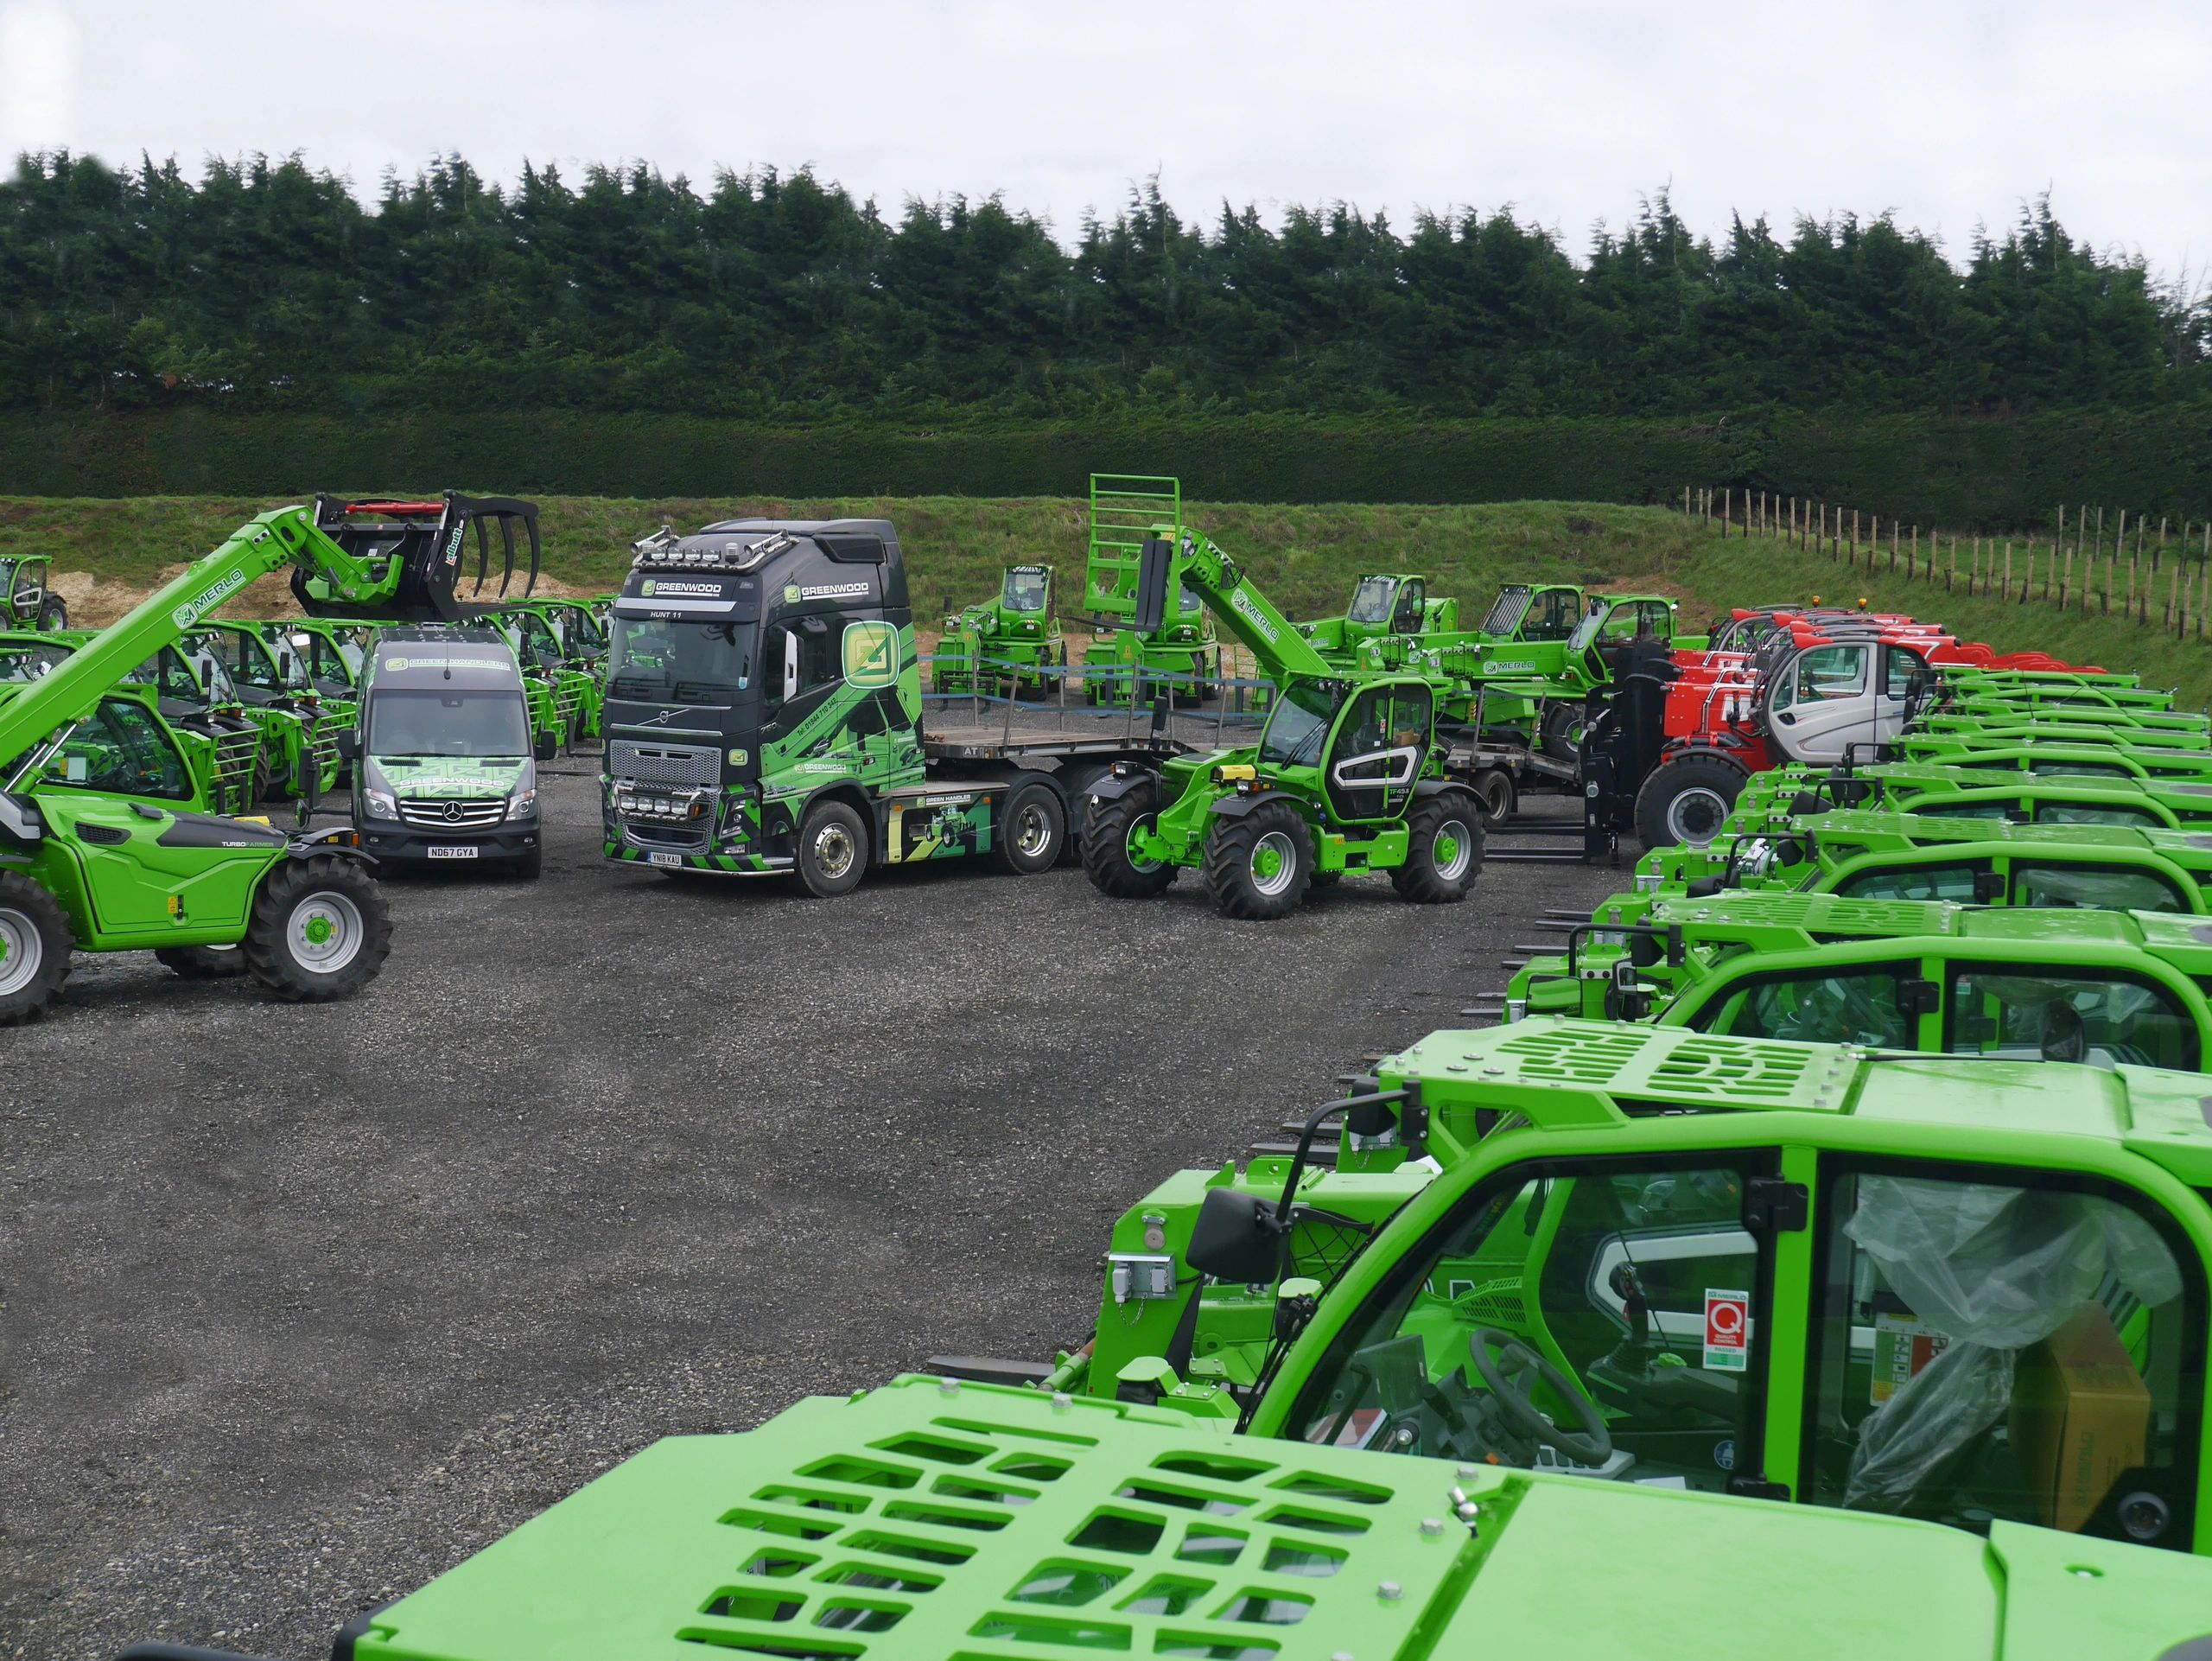 GREENWOOD  HIRE - TELEHANDLER HIRE - ROTO AND HEAVY LIFT - TELEHANDLER CONTRACT HIRE - MERLO TELE